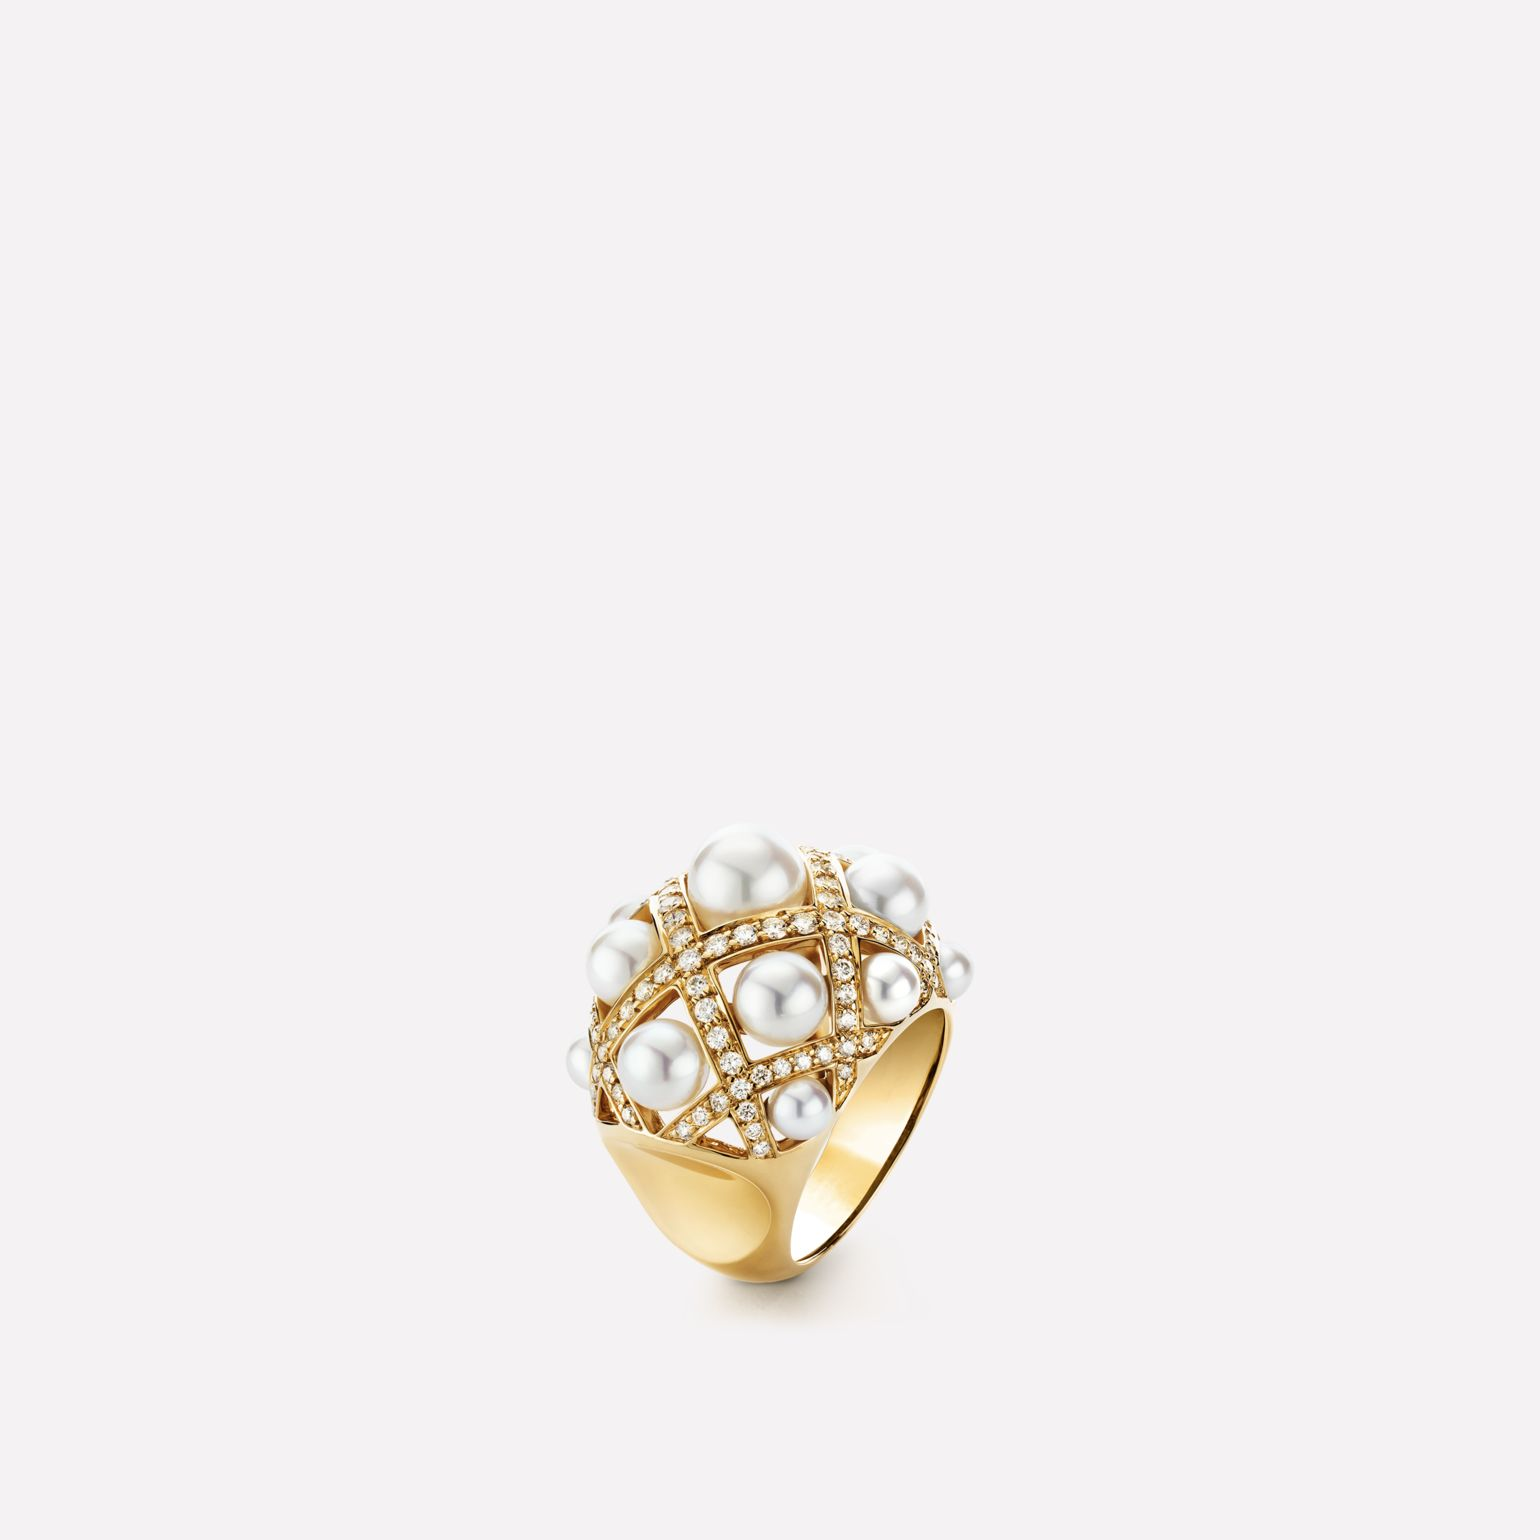 Perles Matelassé ring Large version, 18K yellow gold, diamonds, cultured pearls